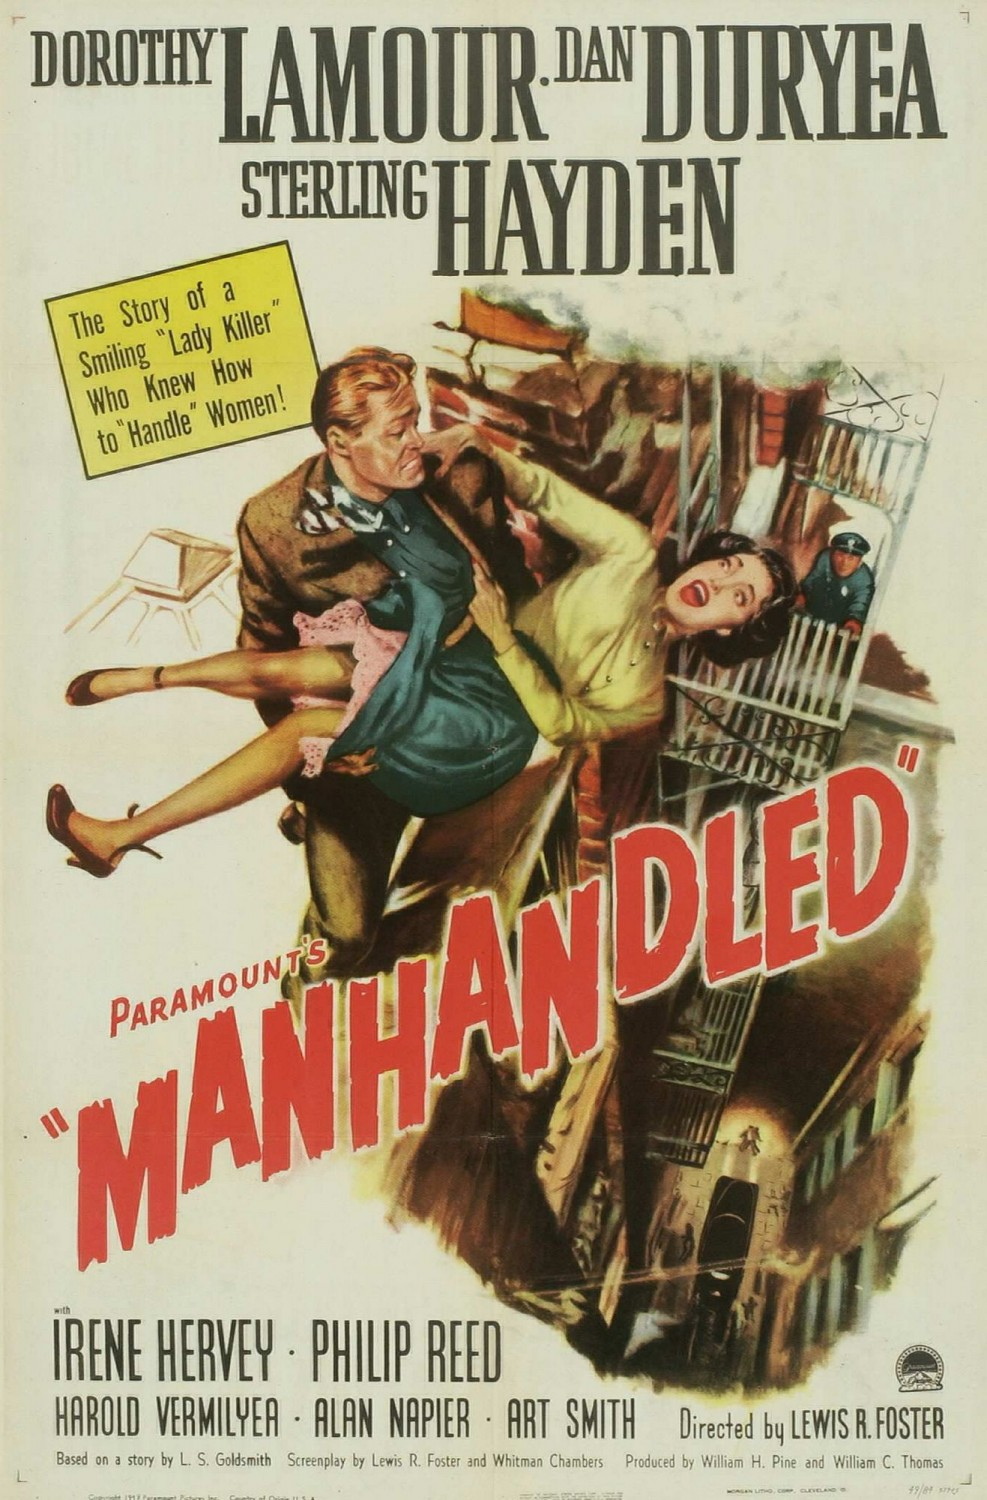 Manhandled (1949)